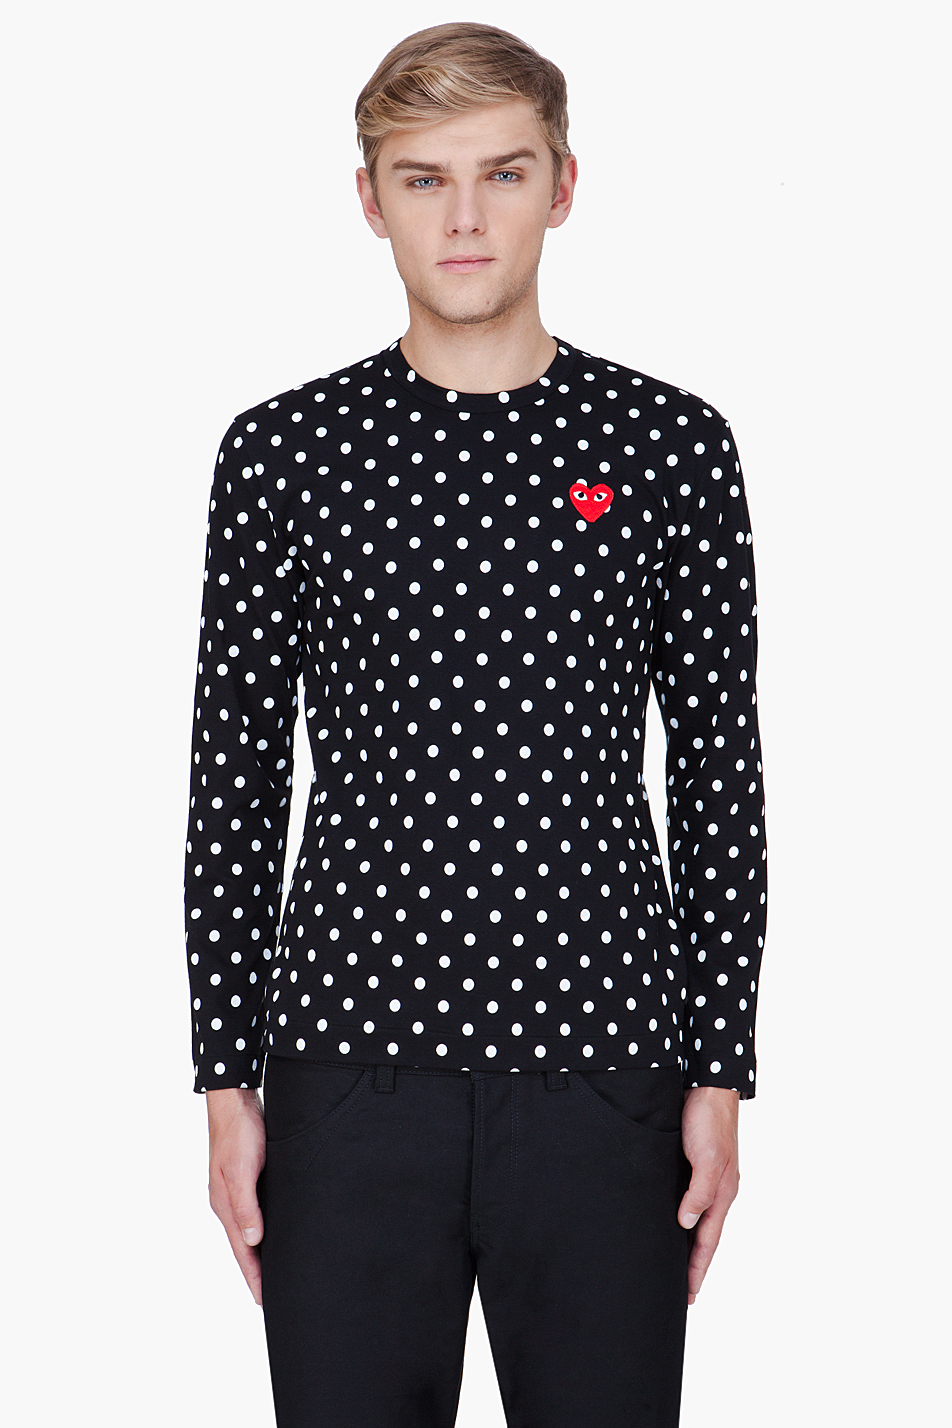 play comme des gar ons black polka dot print jersey shirt. Black Bedroom Furniture Sets. Home Design Ideas